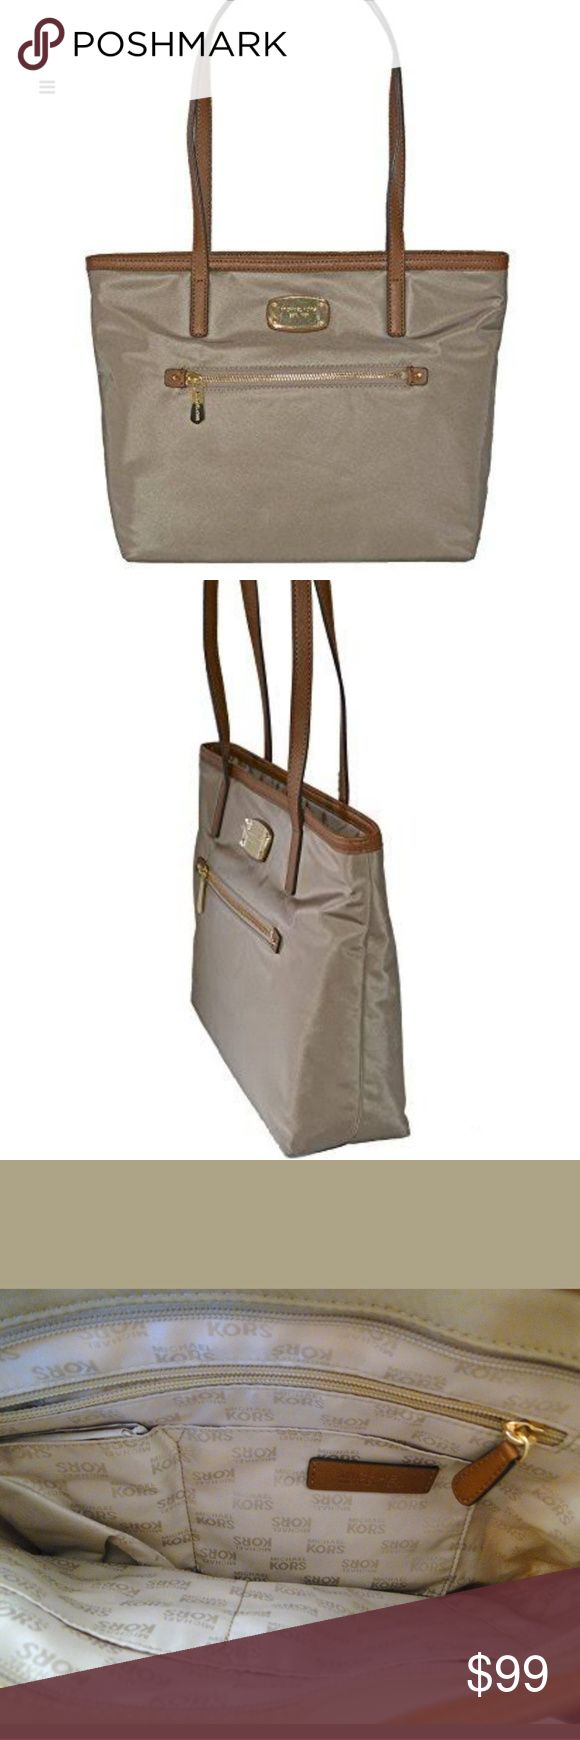 """Michael Kors Montauk Nylon Med Tote shoulder Michael Kors Montauk Nylon Medium Tote  Color: Dusk, Khaki, Brown  Fabric: Nylon  Recessed top zippered closure  Exterior front zippered compartment  Interior: 4 Slip pockets; 1 rear wall zippered compartment  Measurements: 10"""" High x 13"""" Long x 4"""" Deep  2 Handled straps: 10.5"""" Drop  Retail: $128 Michael Kors Bags Totes"""